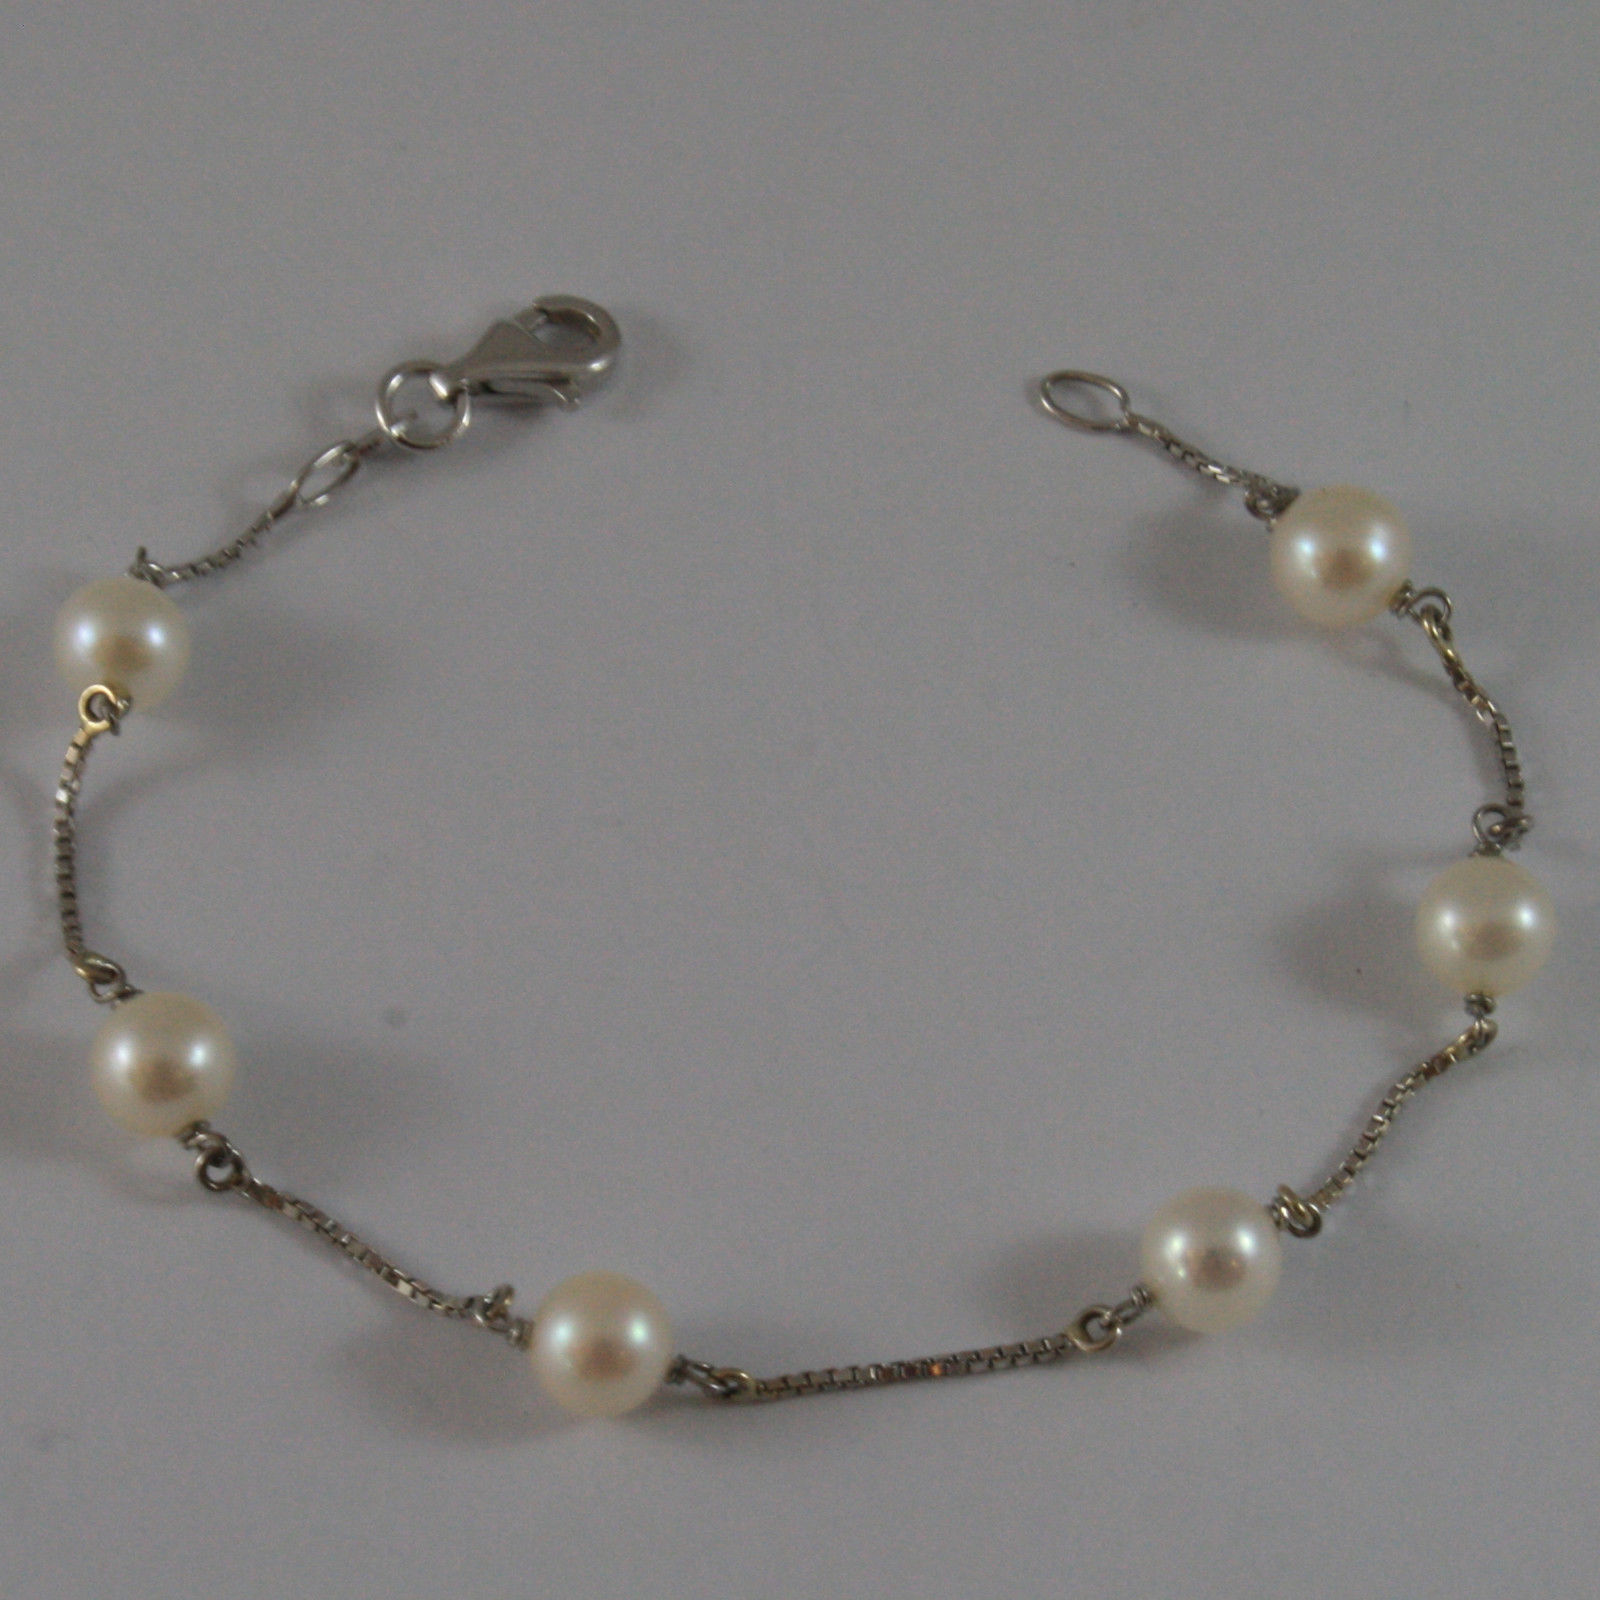 SOLID 18K WHITE GOLD BRACELET WITH FRESHWATER WHITE PEARL MADE IN ITALY 7.28 IN